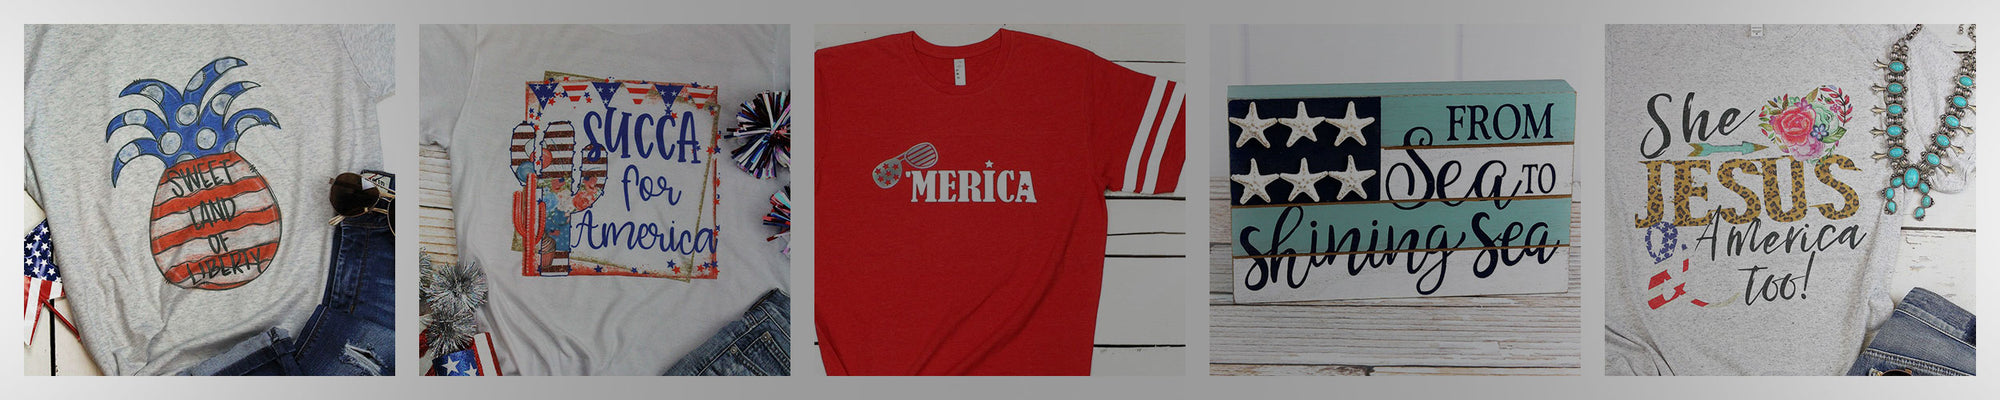 Wholesale patriotic jewelry and t-shirts for the 4th of July